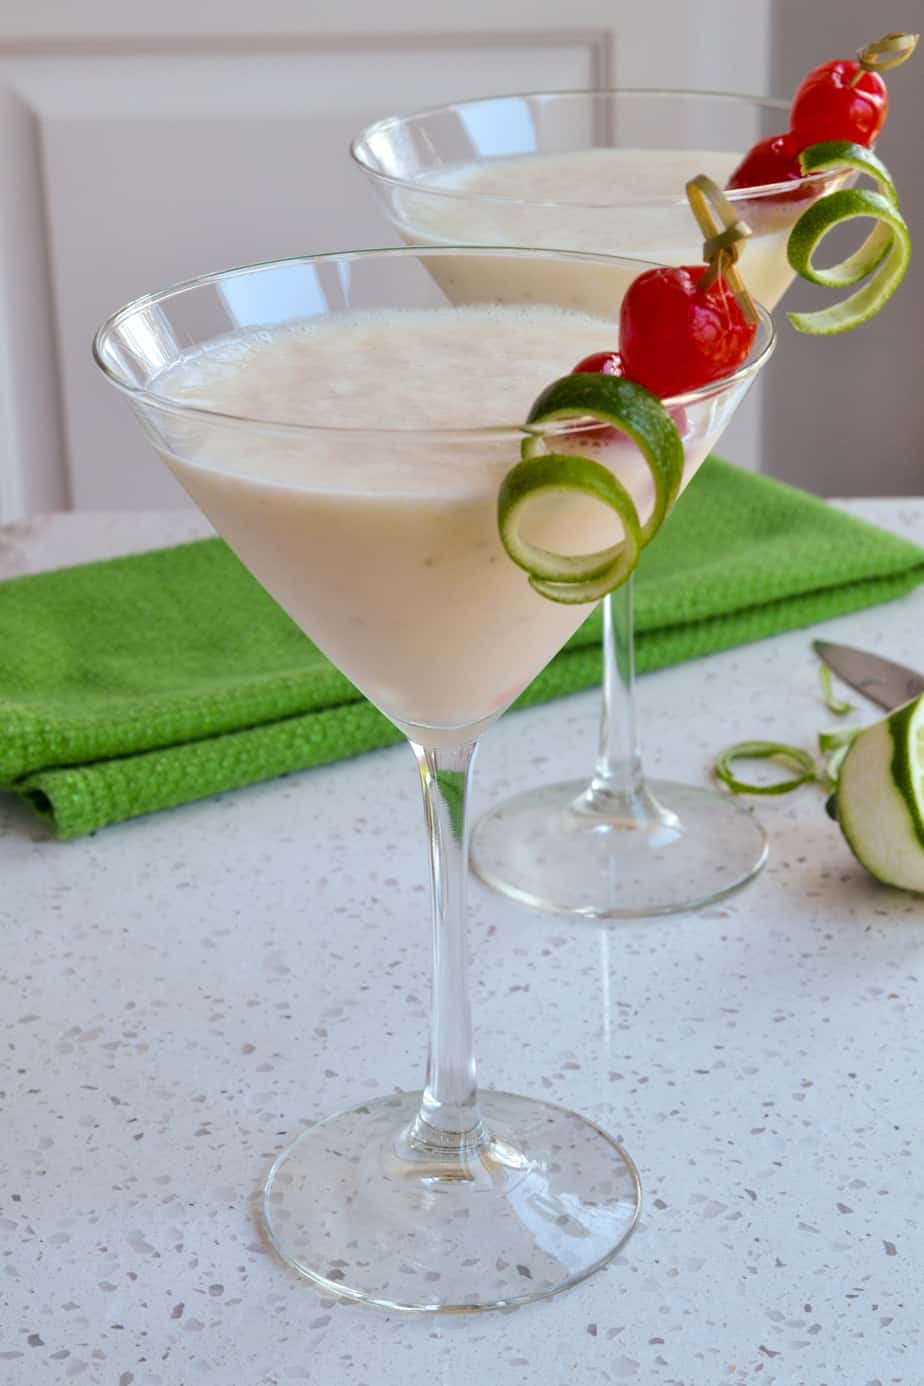 Rum, bananas, coconut milk, and ice are blended to make these cocktails.